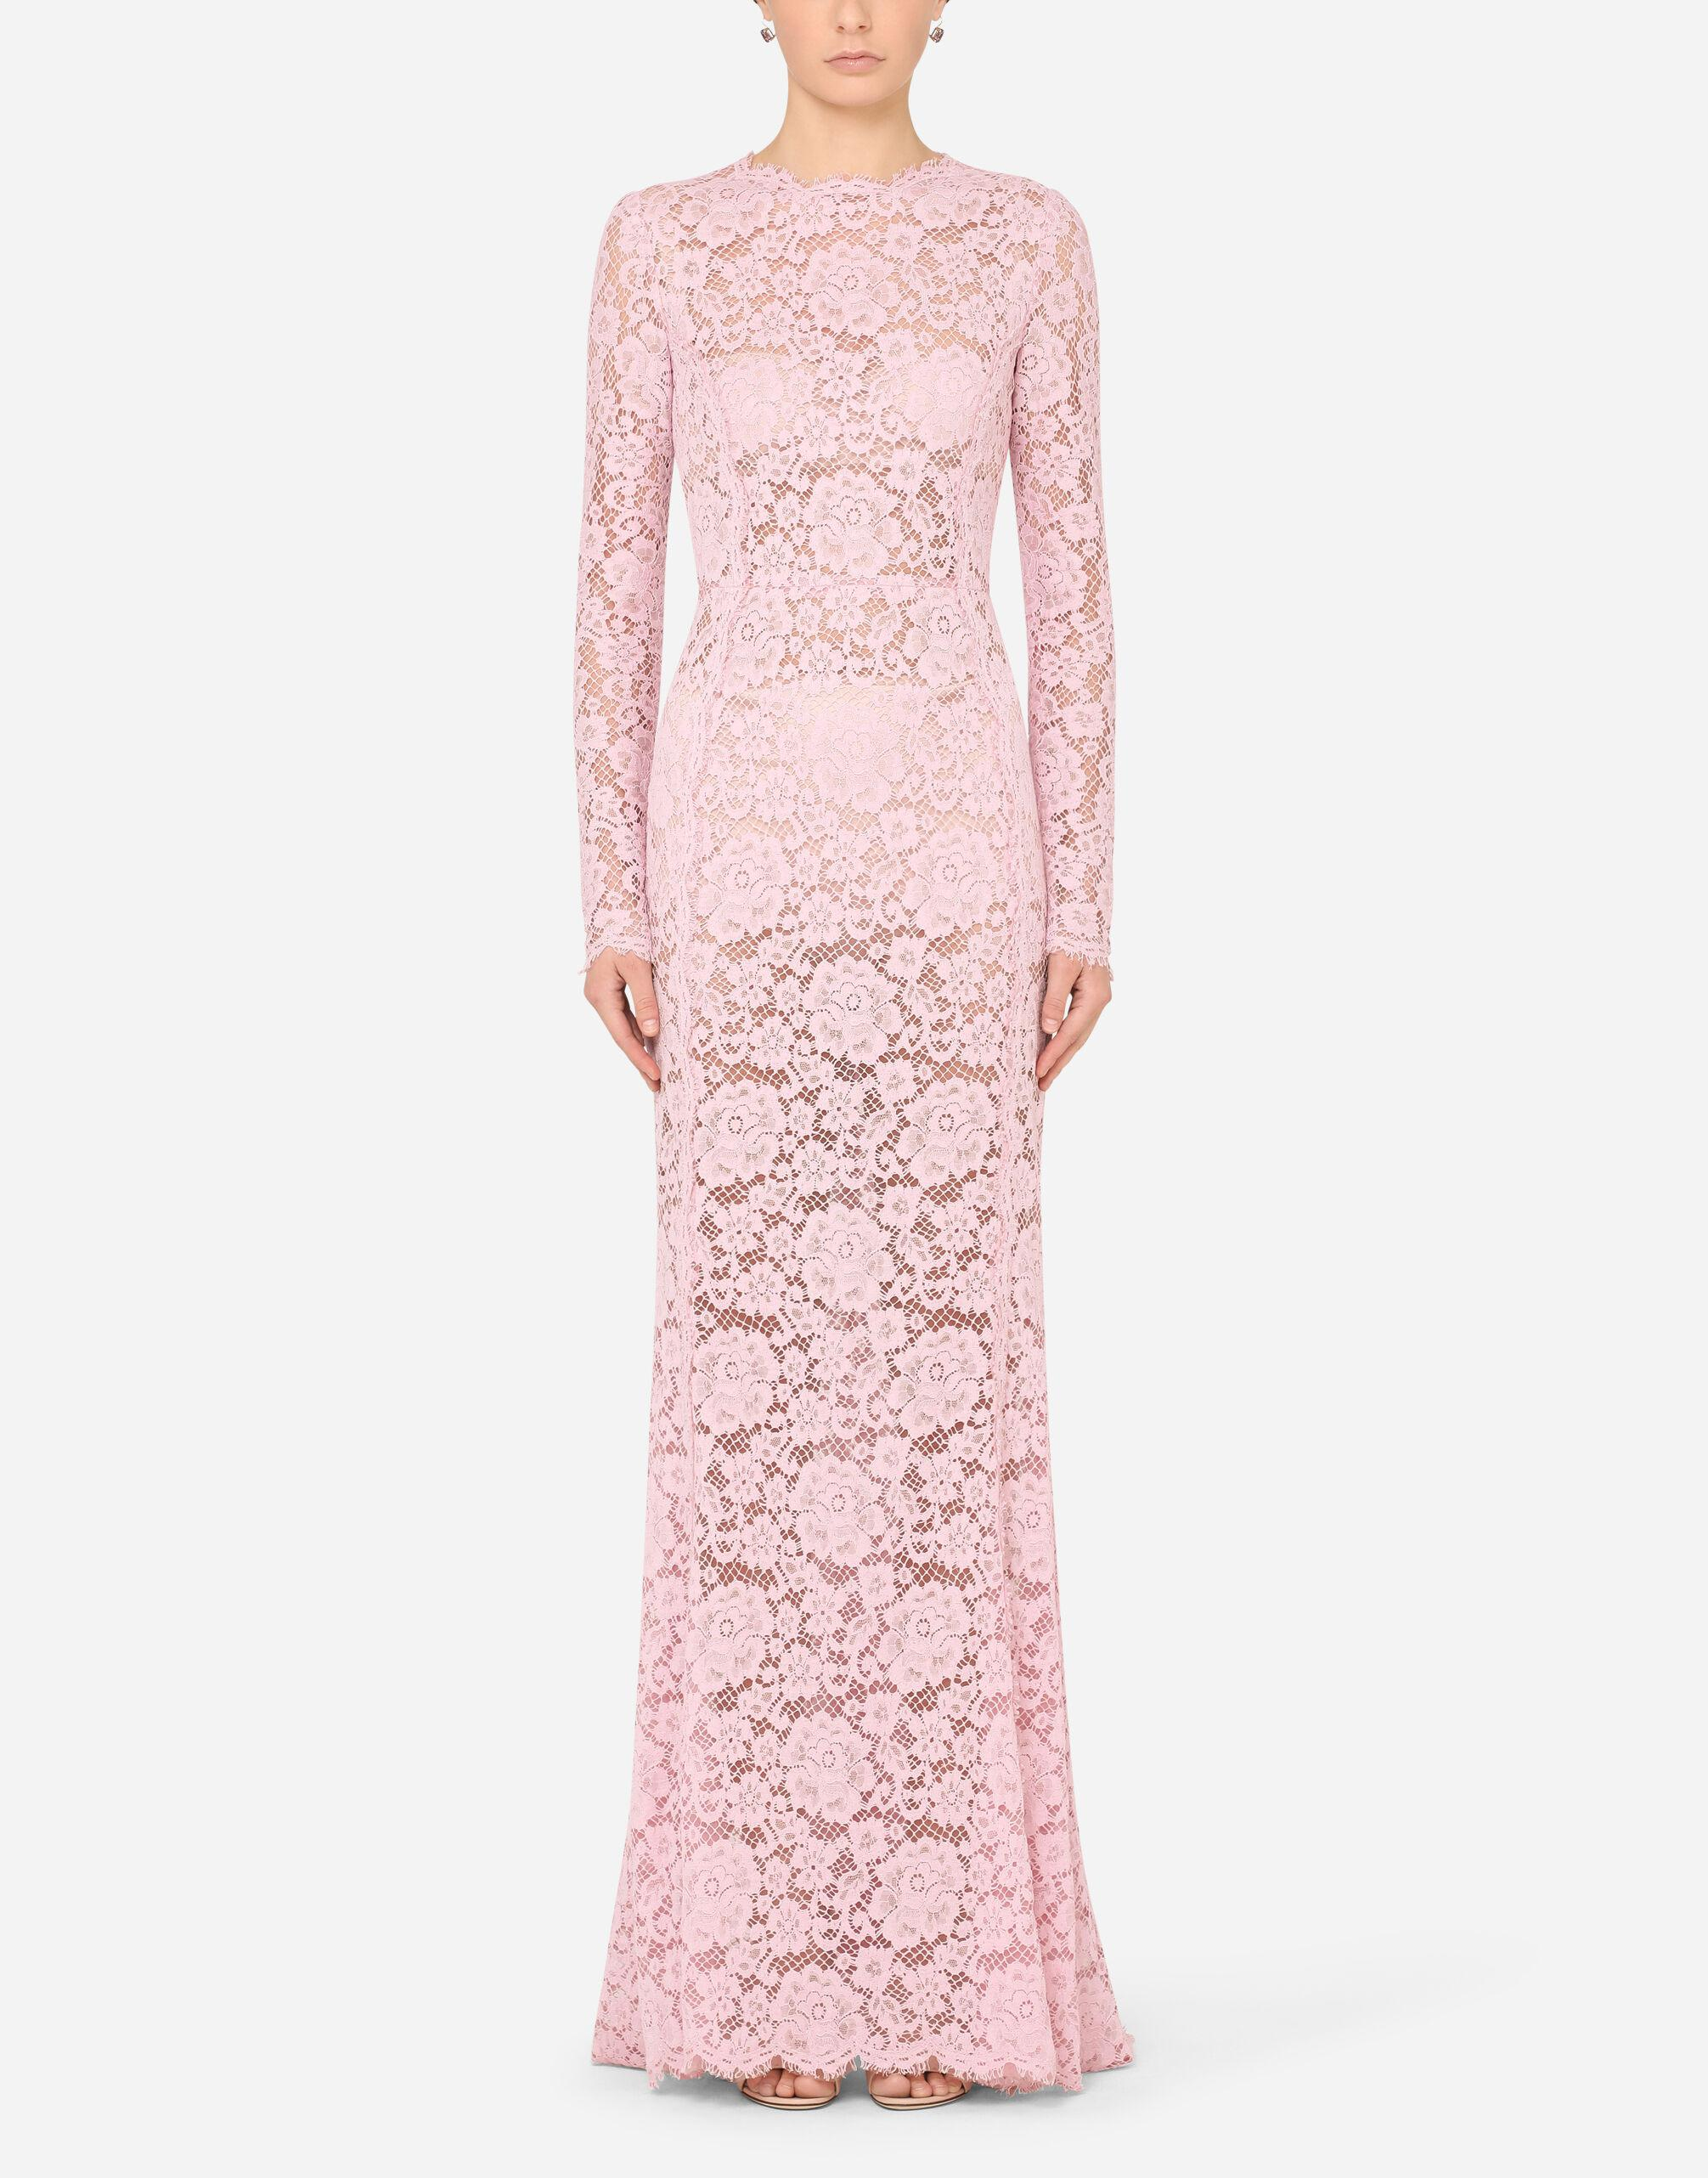 Long lace dress with train